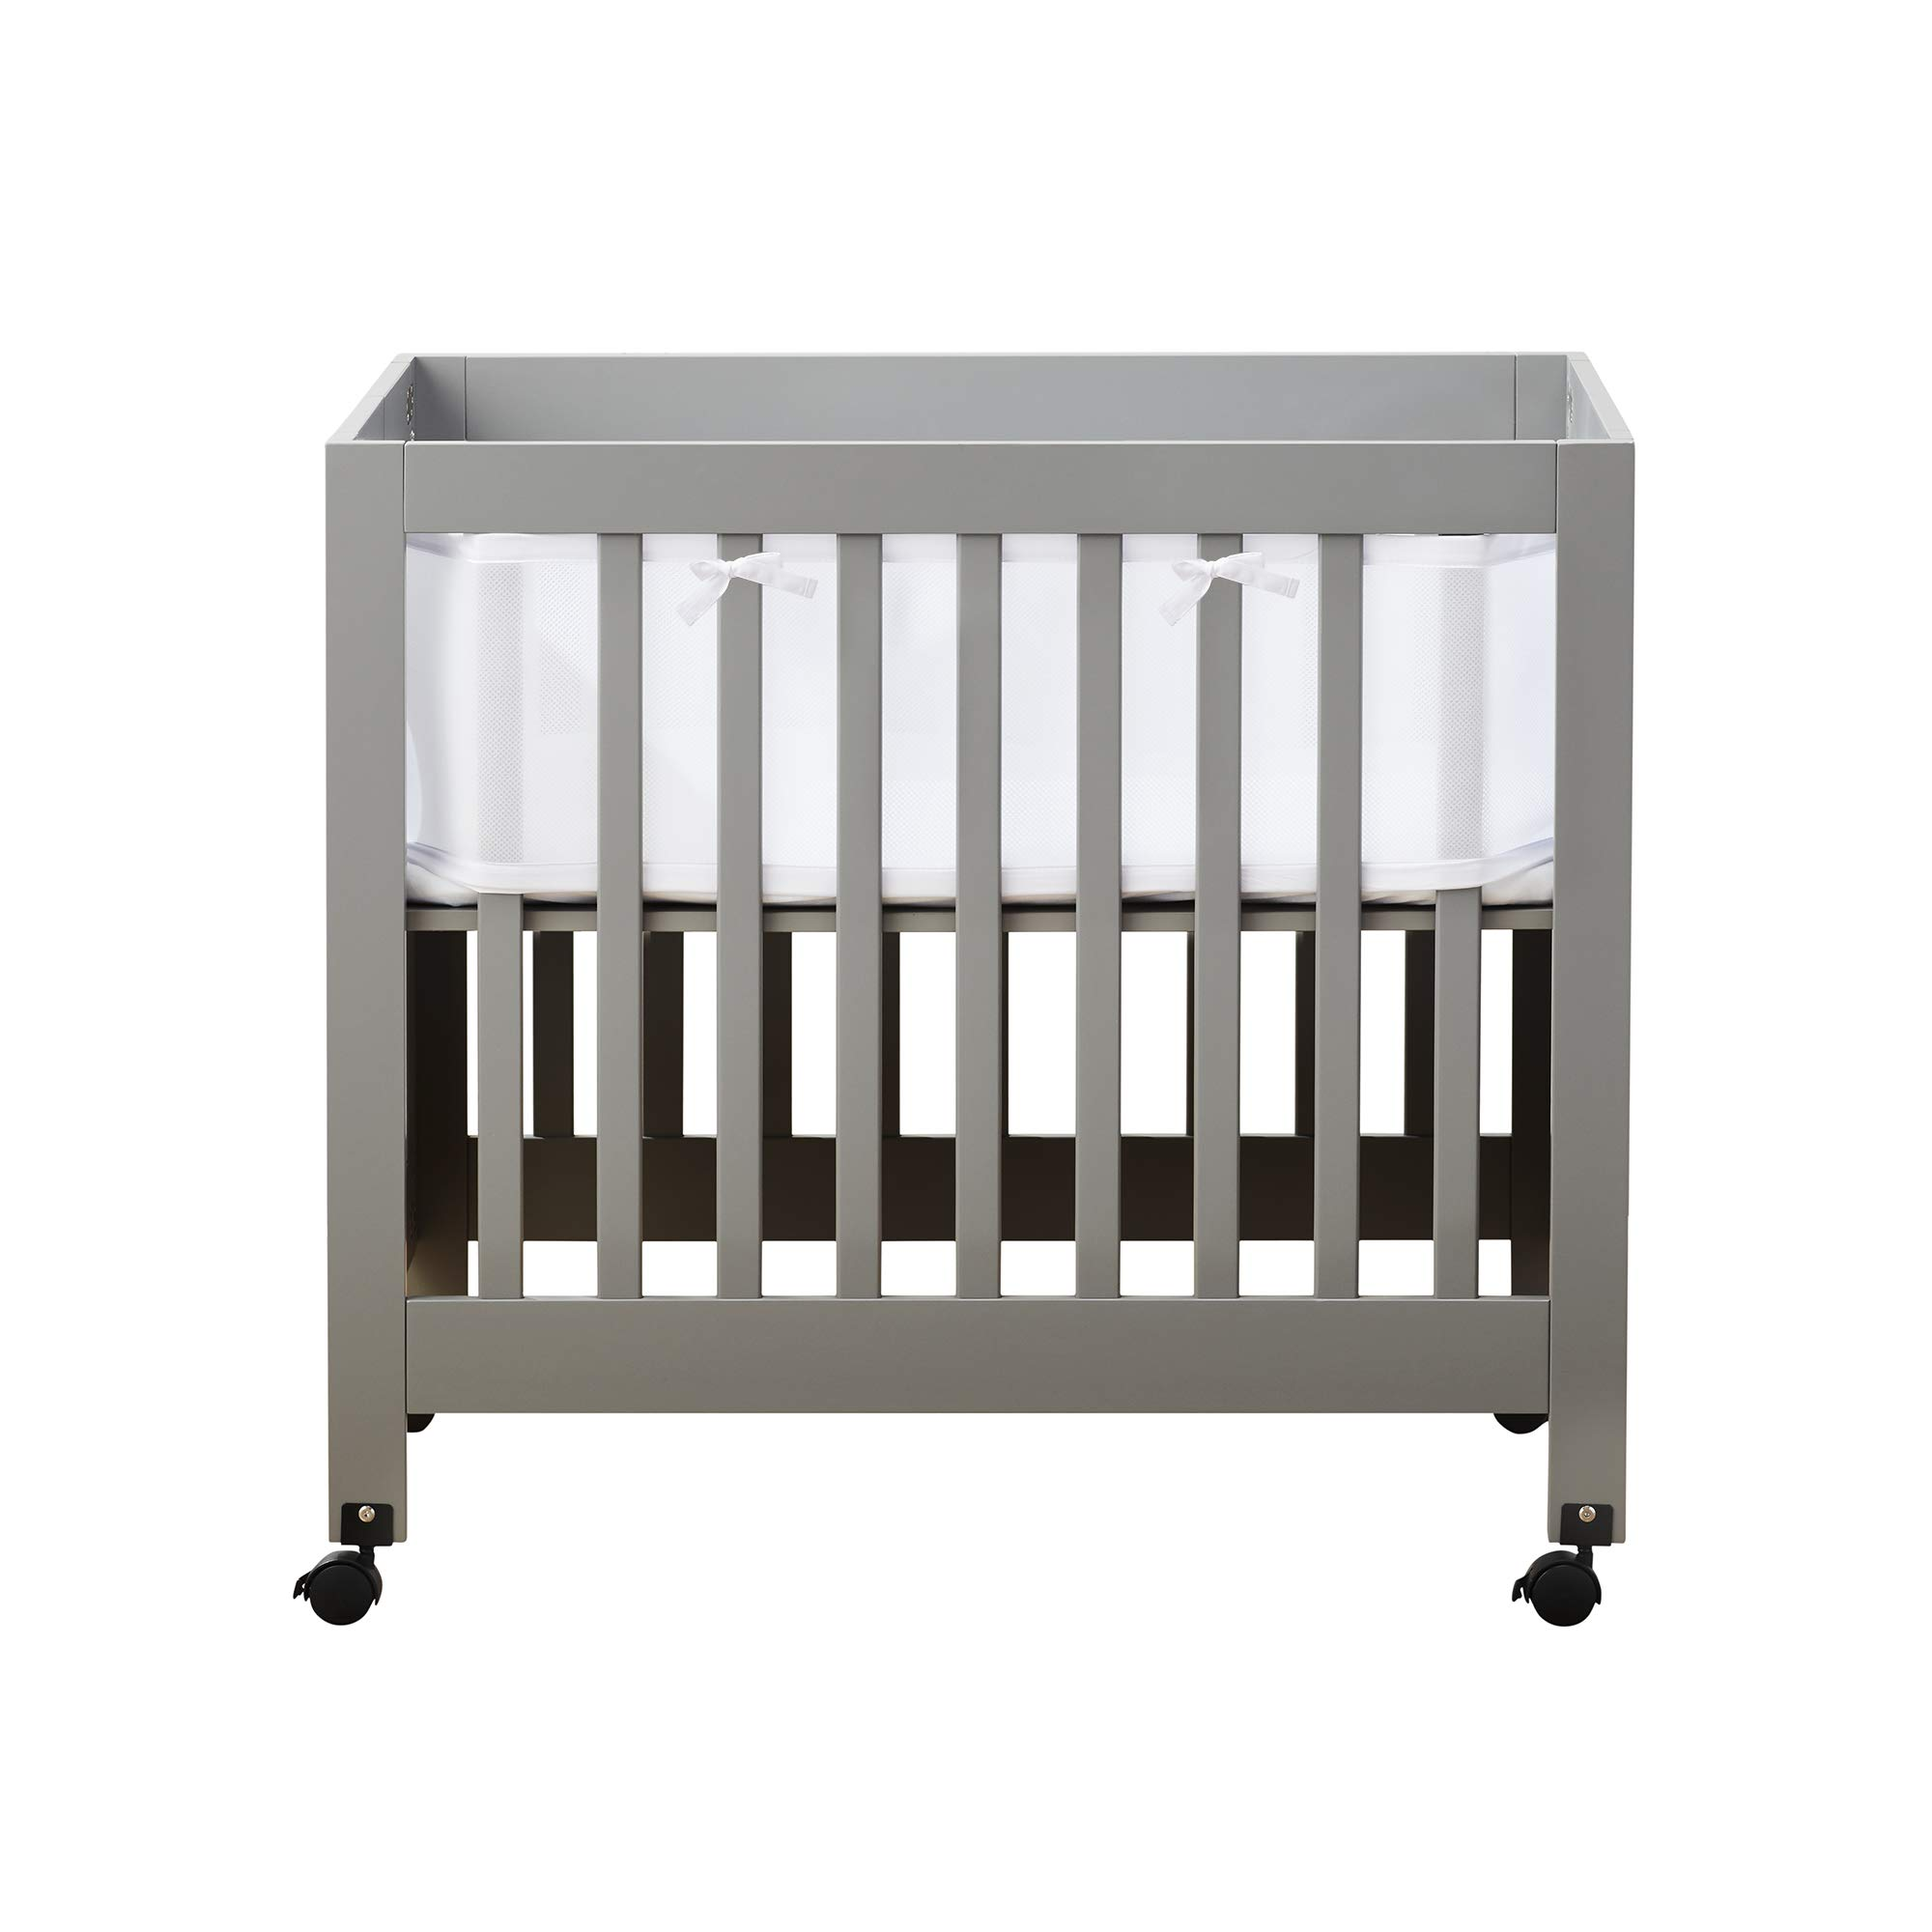 BreathableBaby | Mesh Crib Liner | Portable & Mini Cribs | Made of Lightweight, Breathe